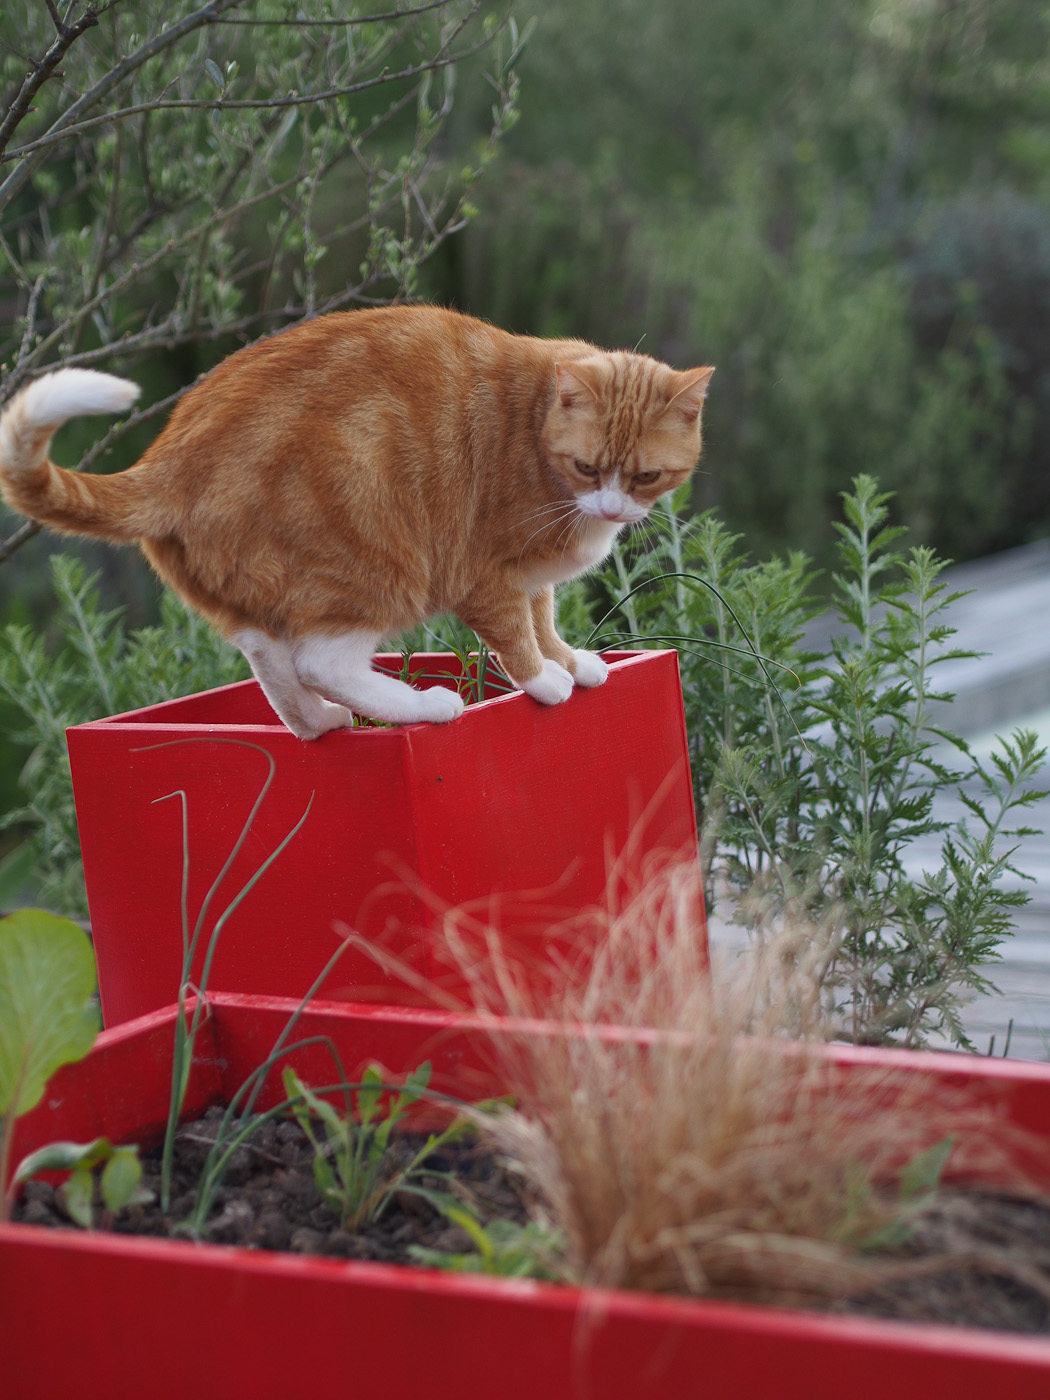 A ginger cat on red flower pots. Olympus OM-D E-M5